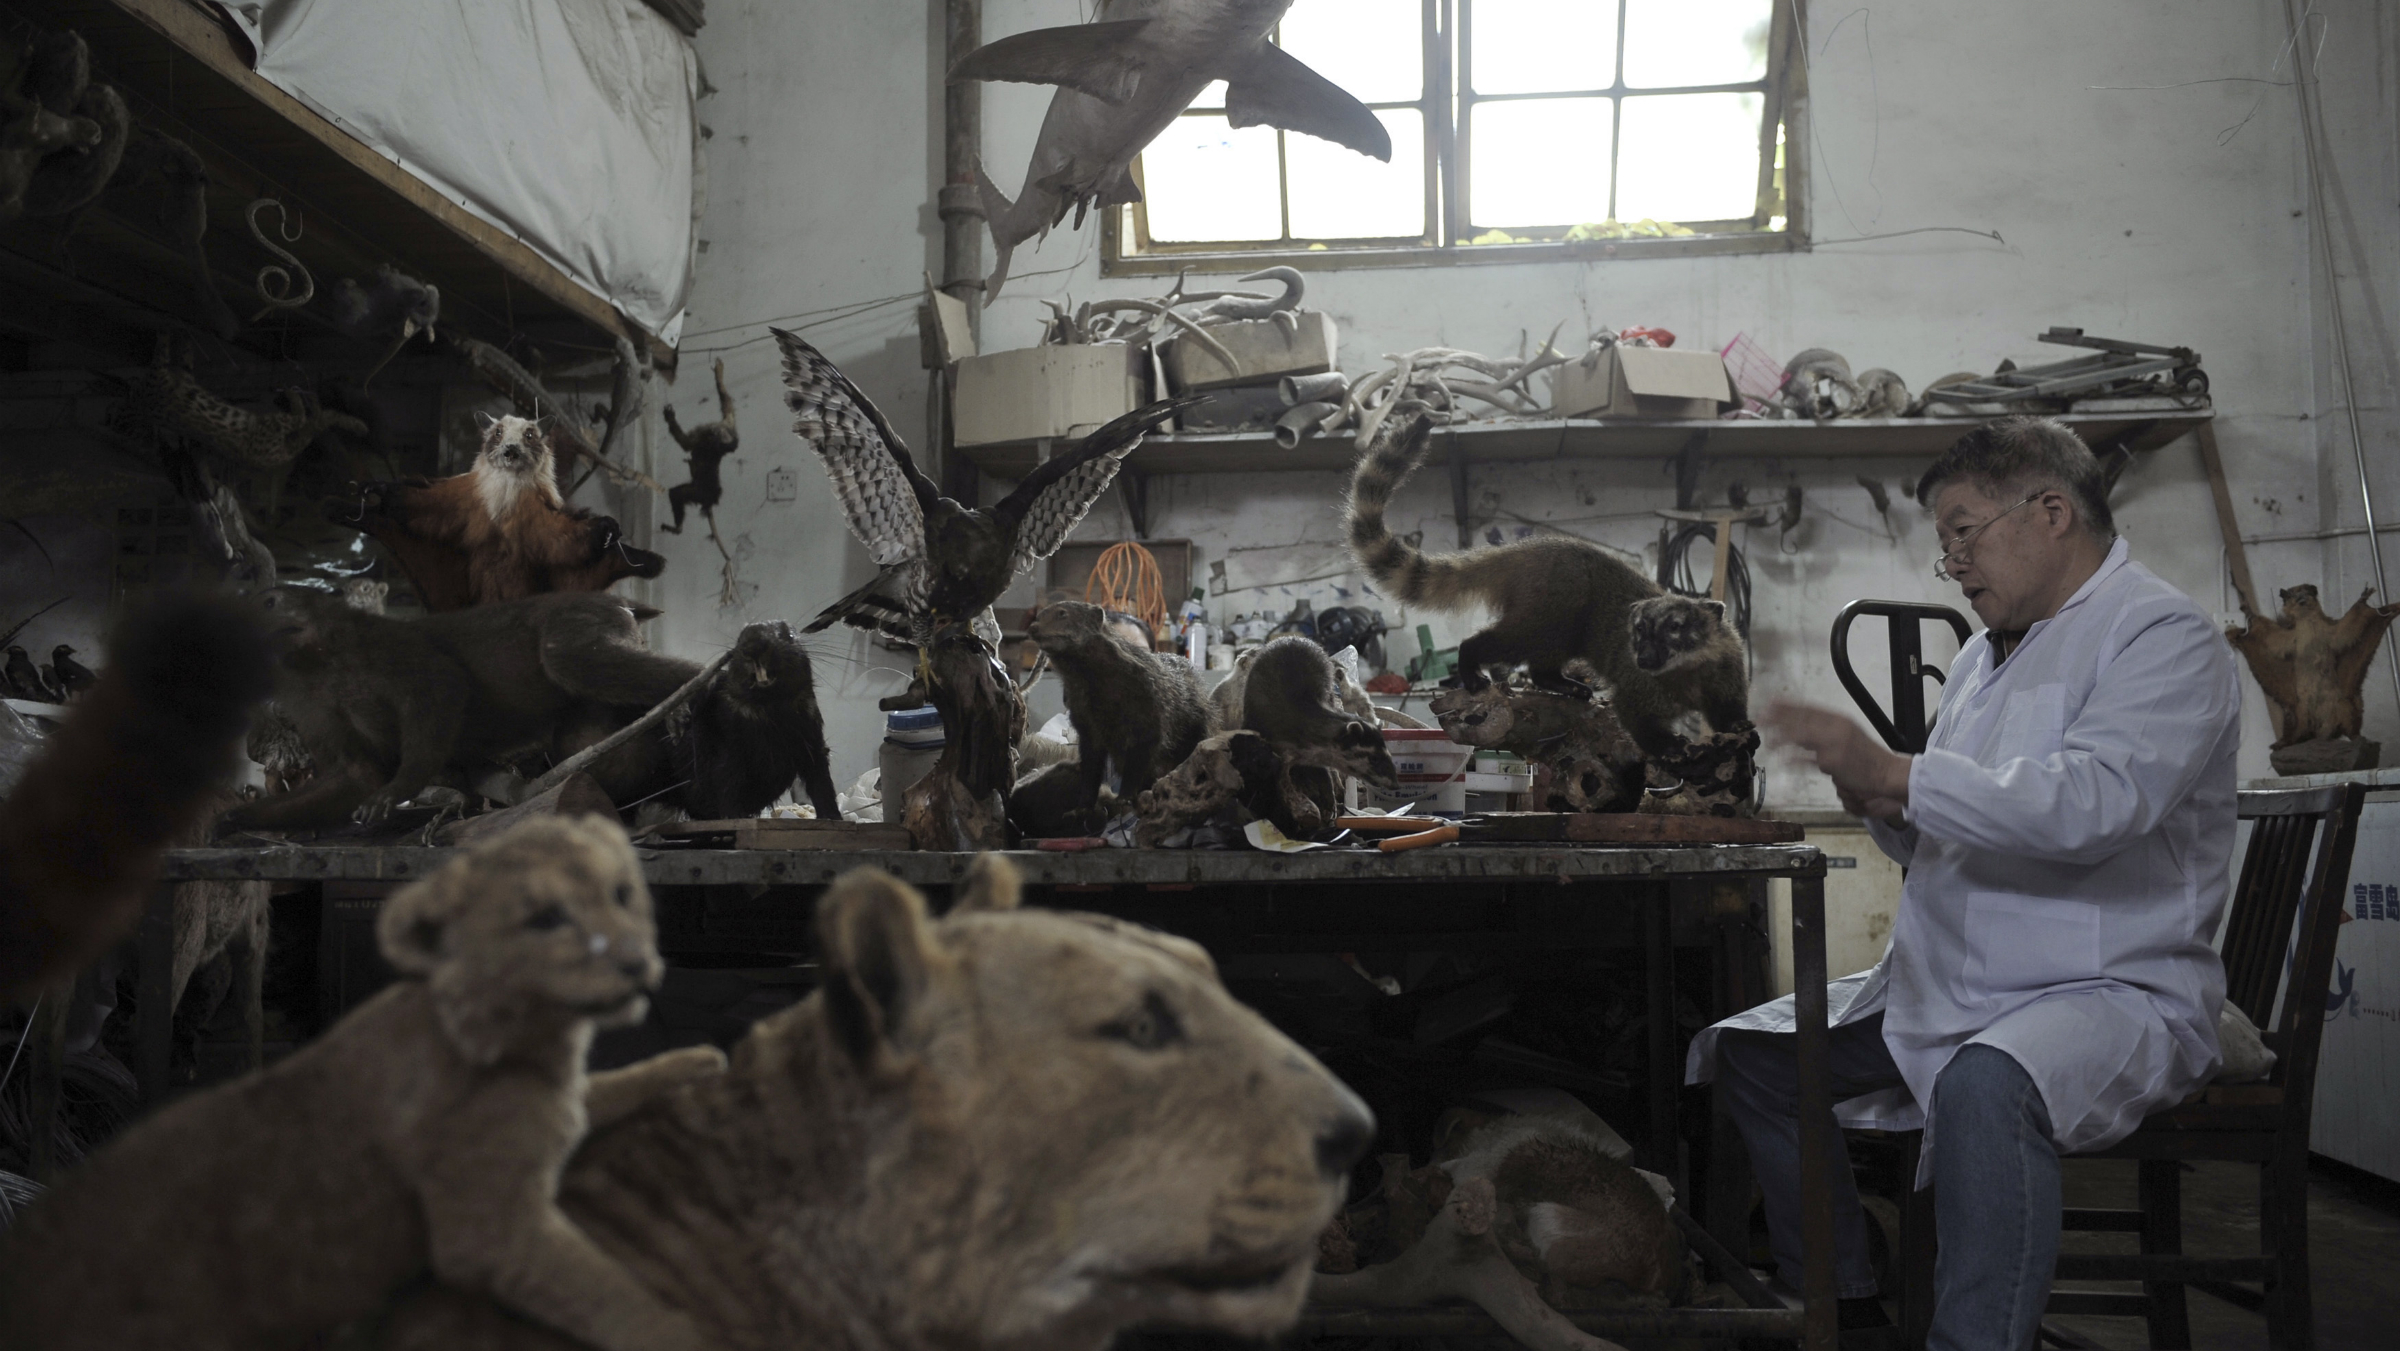 An employee checks a specimen of a squirrel monkey at an animal specimen factory in Fuzhou, Fujian province April 9, 2012. The factory collects animal carcasses from zoos all over China, carefully separates out and preserves the animal skins and furs, and stuffs them with straws or plastic foam to make specimens. There are currently more than 1,000 specimens in the factory, most of which will be sold to museums and schools, local media reported. REUTERS/China Daily